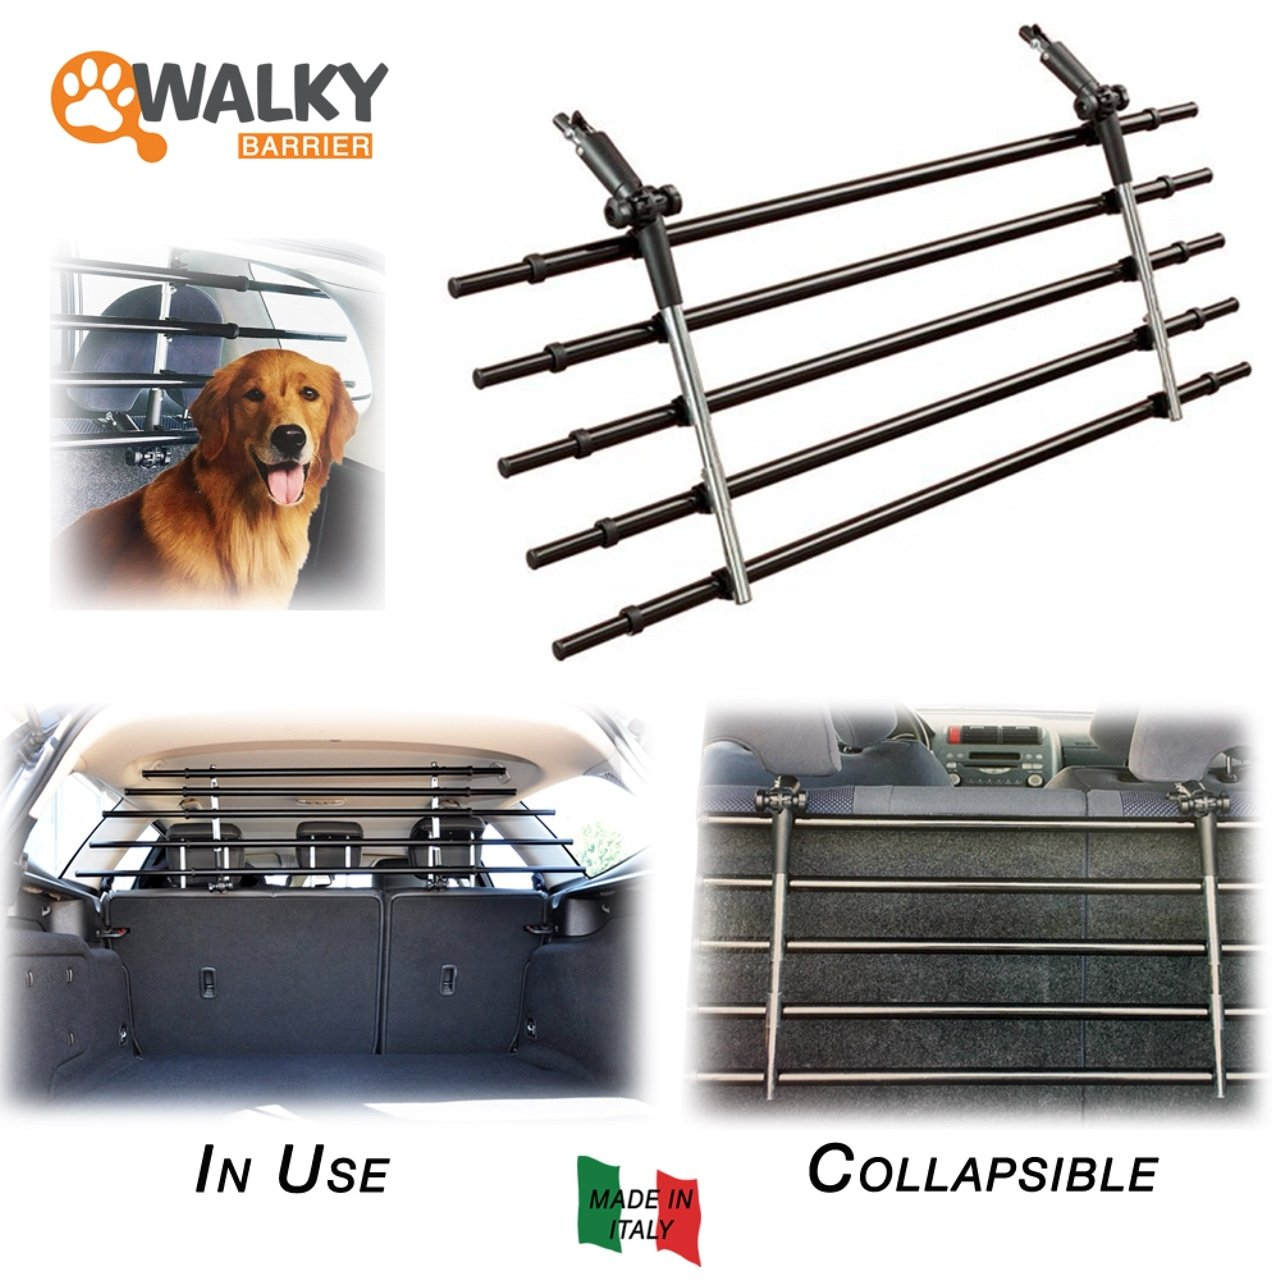 Walky Barrier, K9 Auto Guard Barrier, Foldable Auto Pet Barrier, Adjustable Car Barrier for Pet Automotive Safety